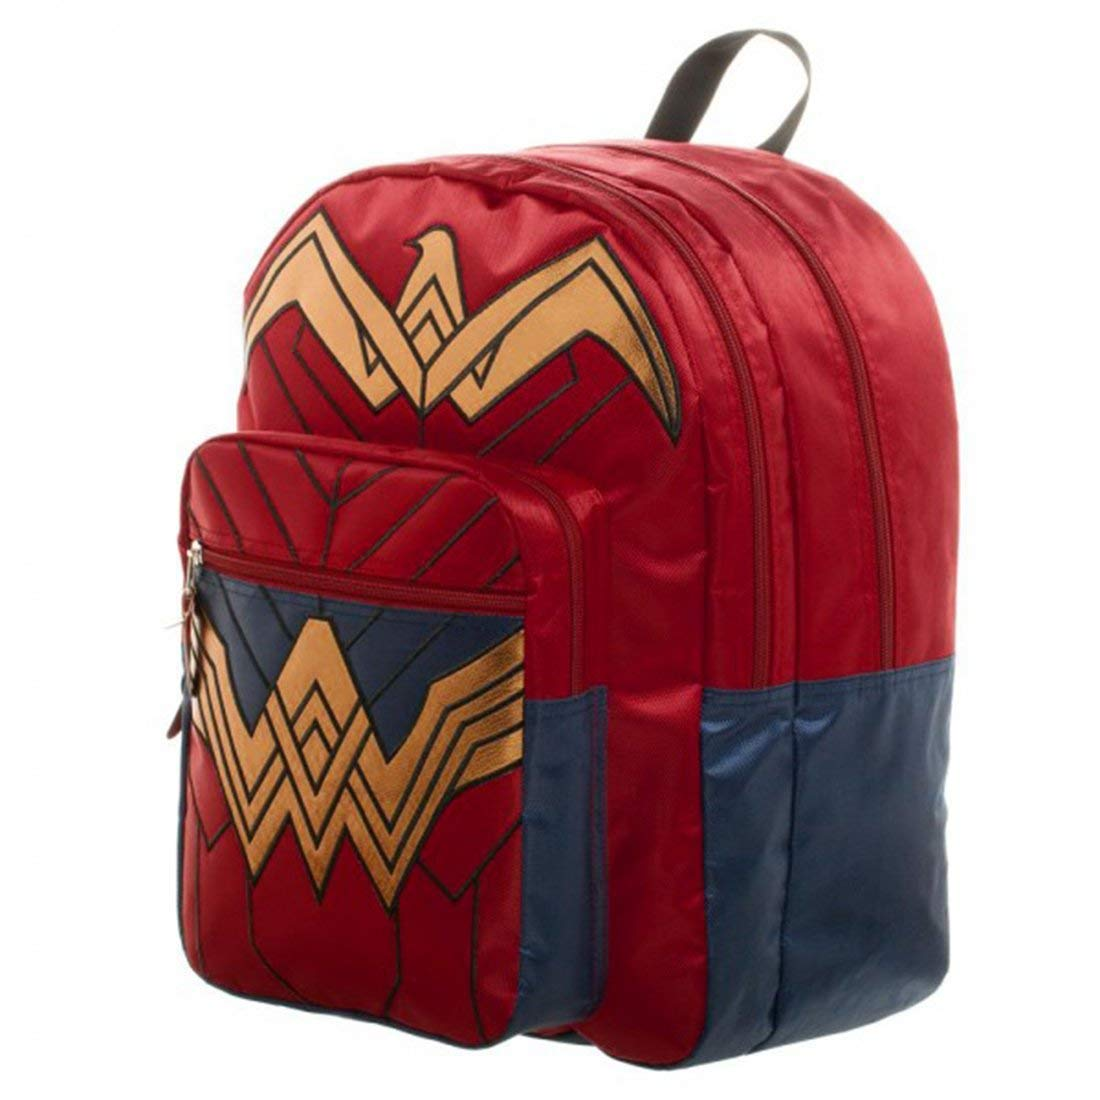 48d6f3c01d8f Dawn of Justice Wonder Woman Backpack 18 x 19in